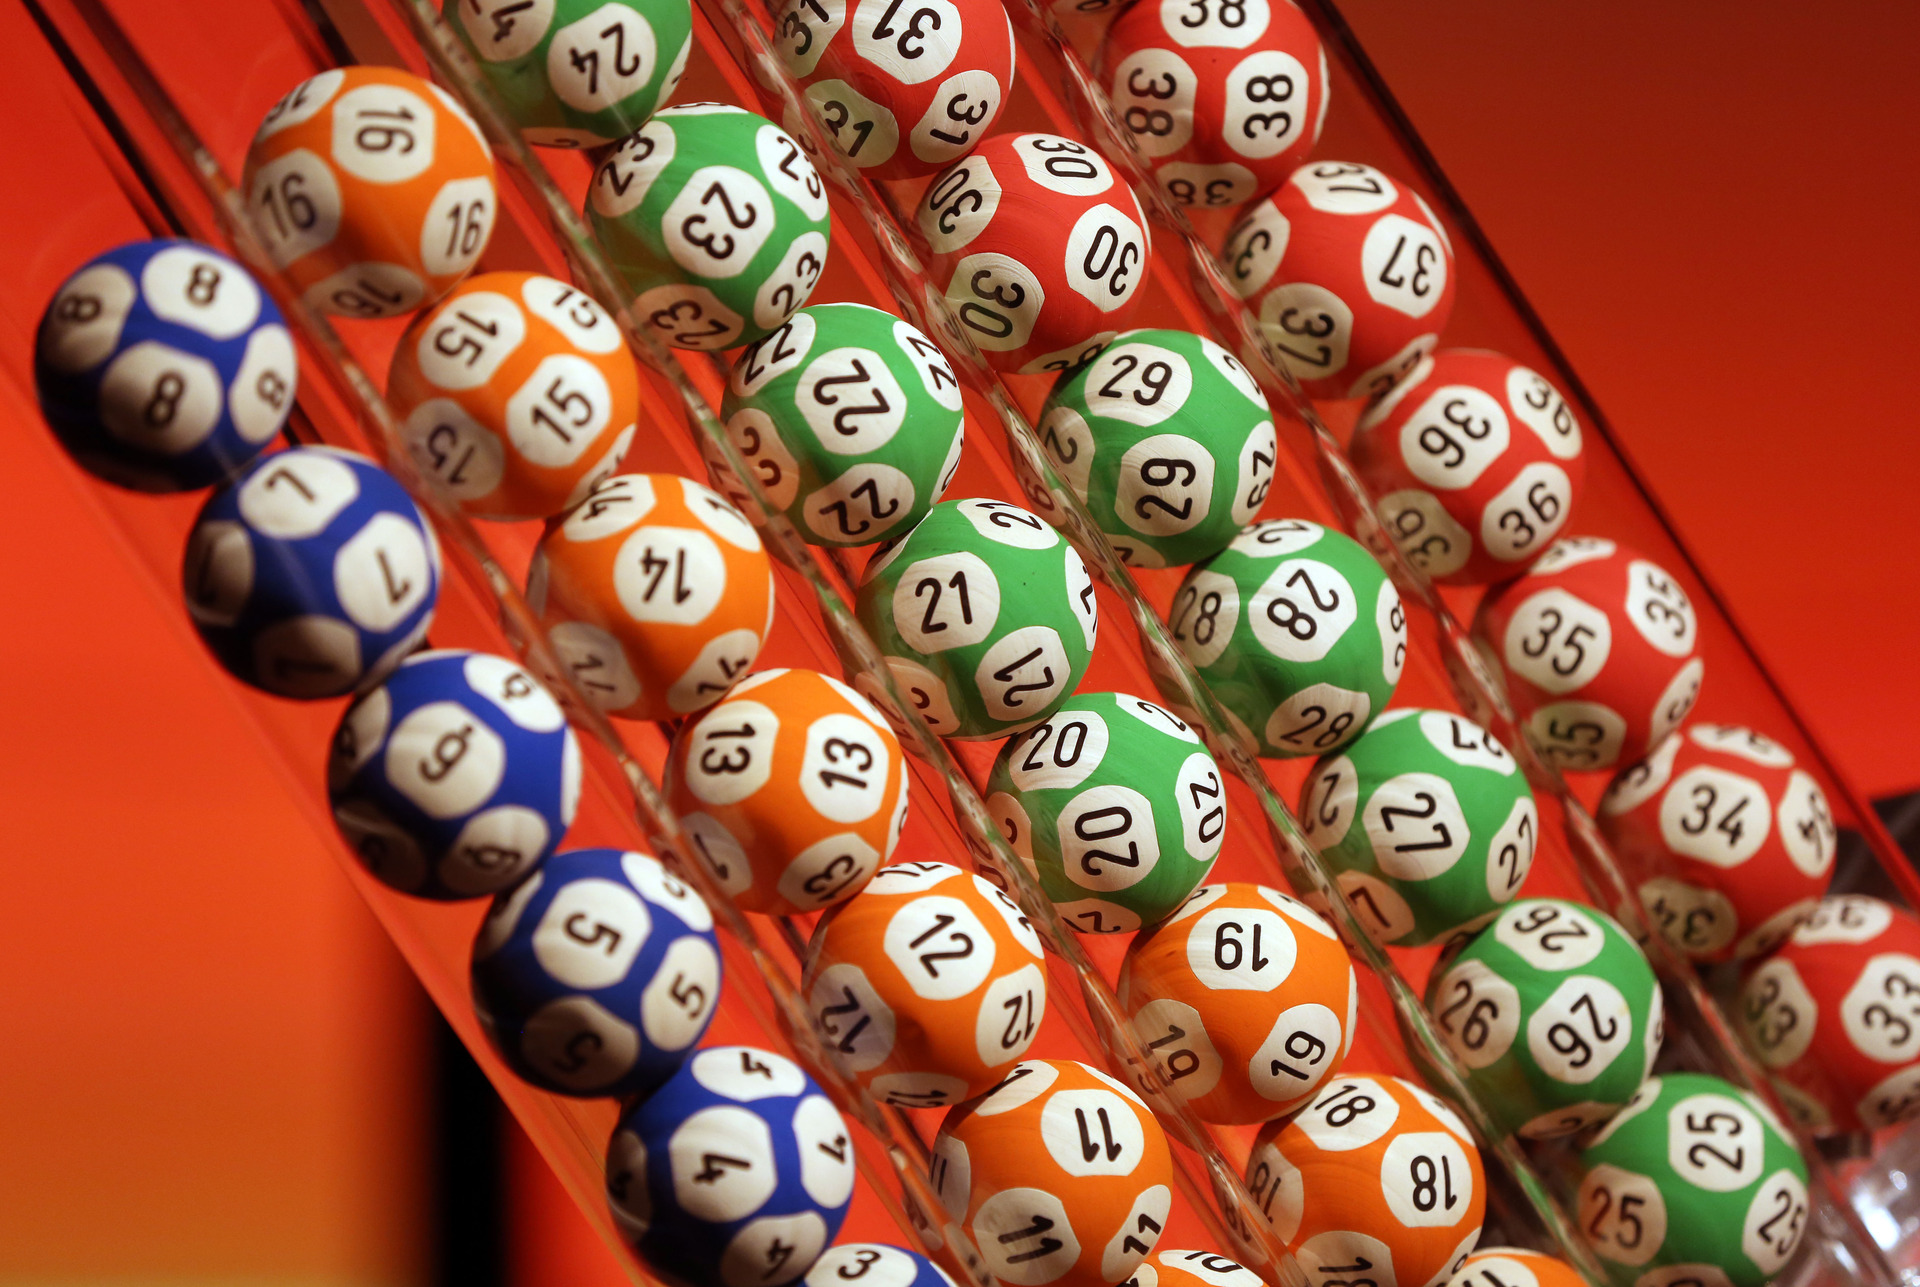 Lotto revenue falls after huge year for Powerball jackpot winners